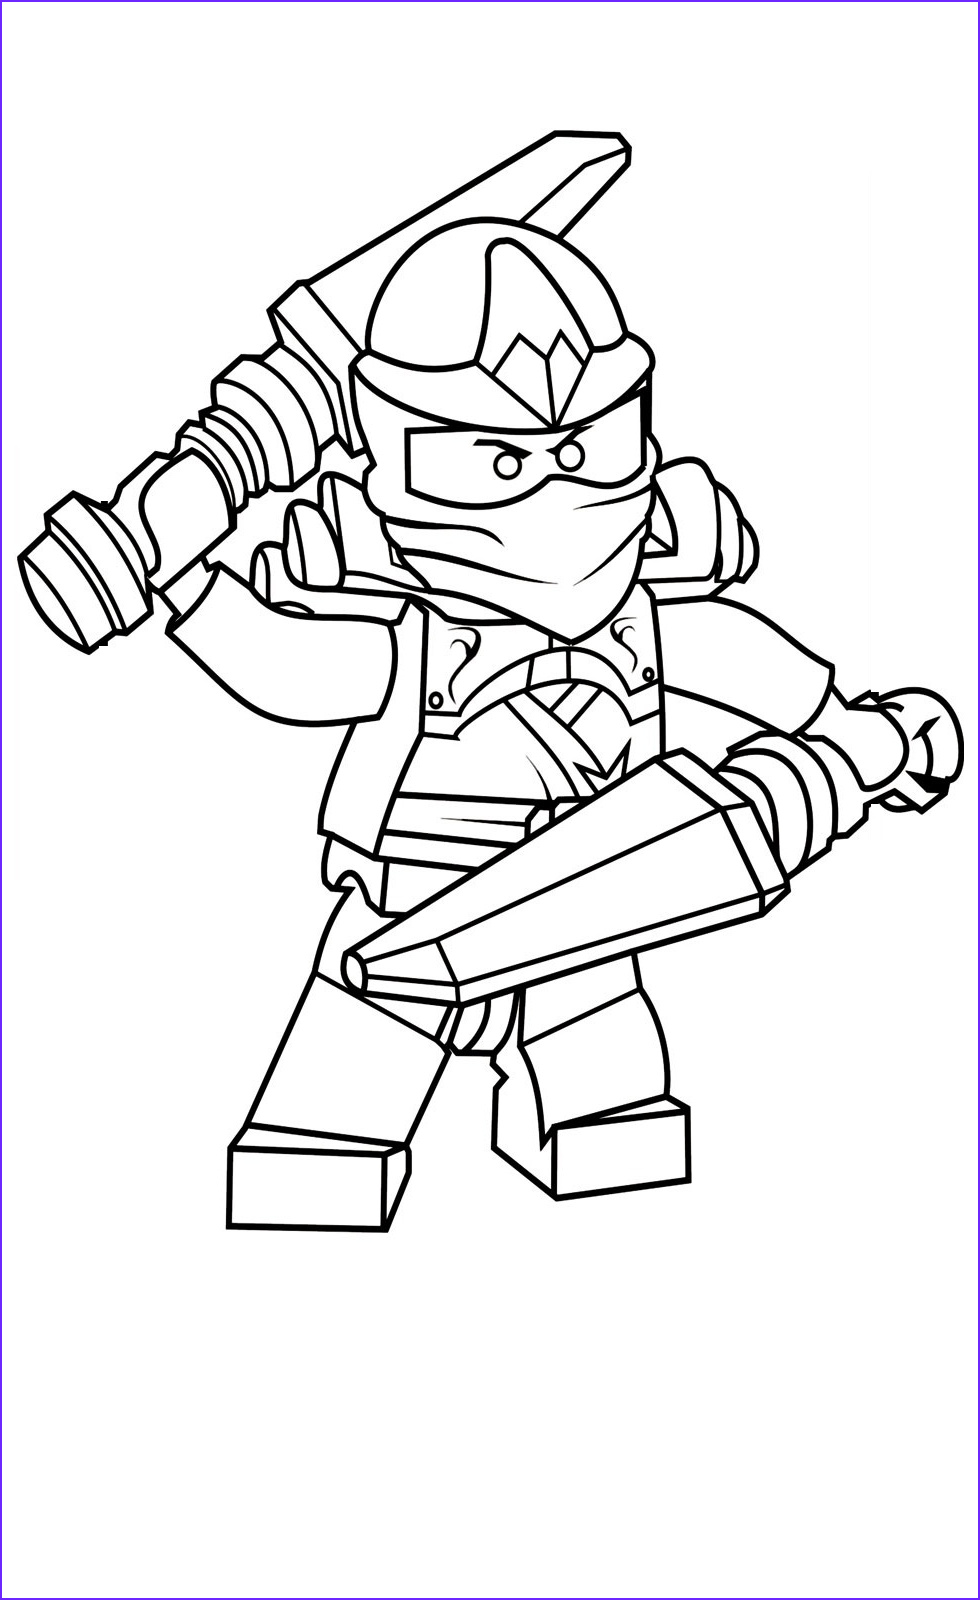 Free Coloring Pictures.com Cool Photography Lego Ninjago Coloring Pages Best Coloring Pages for Kids